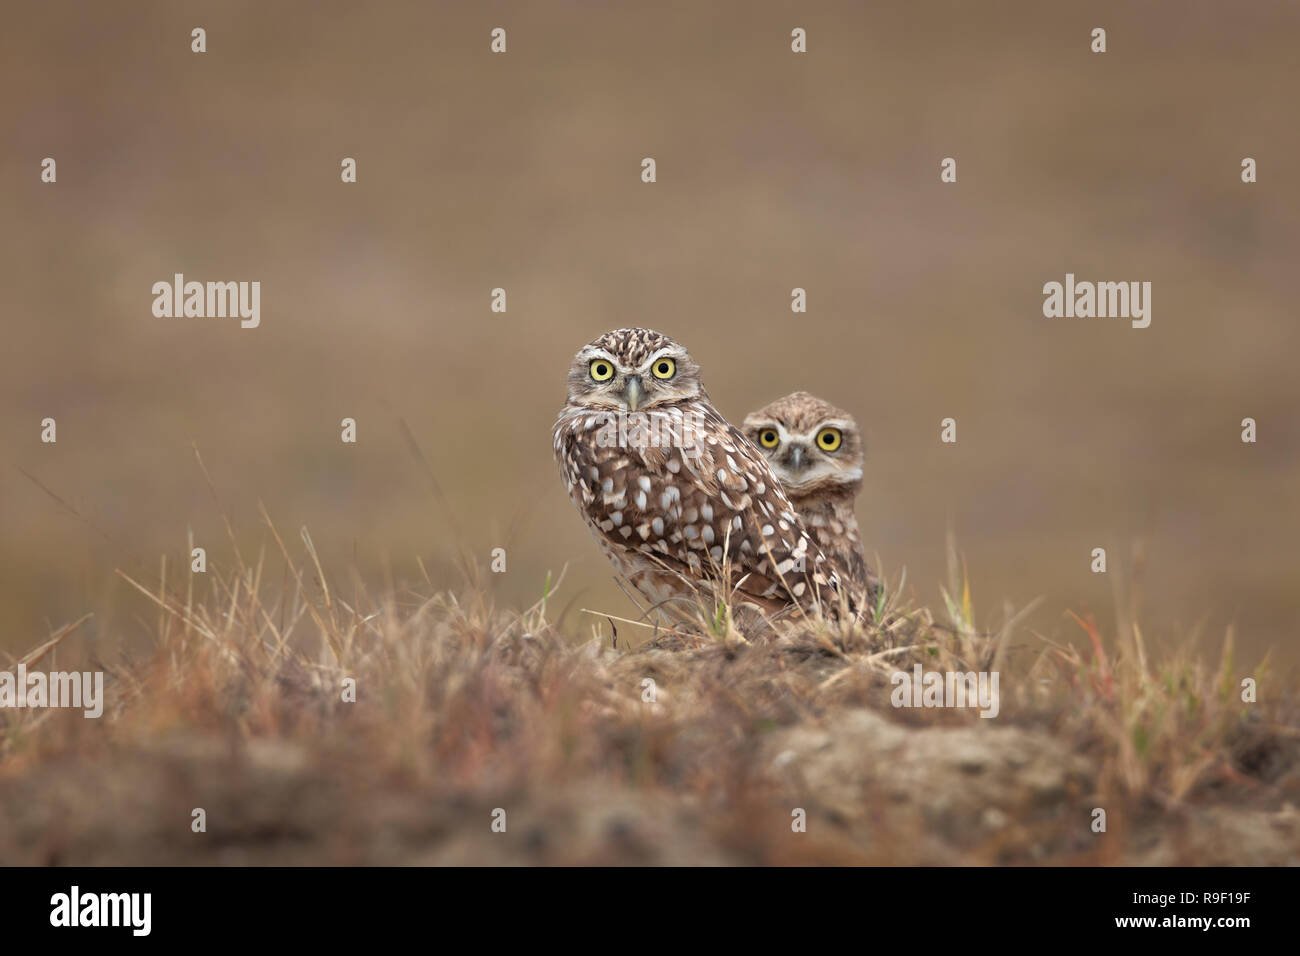 Búho machuelo excavador burrowing owl couple - Stock Image